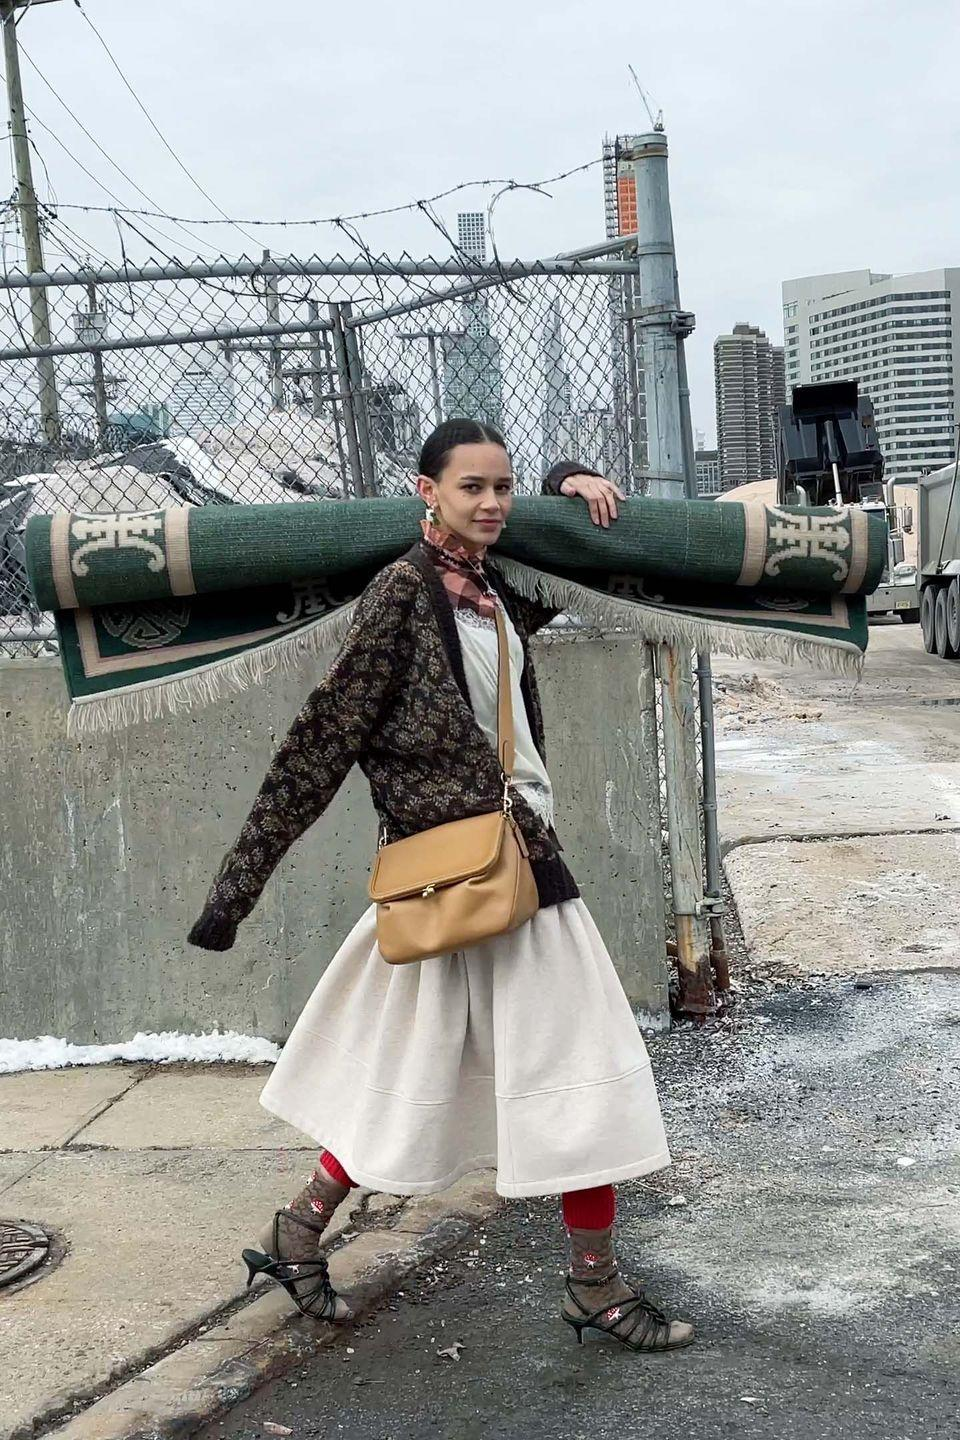 "<p>This week Coach debuted its autumn/winter collection, which the house is calling 'Coach Forever Season Two'. Presented during a live virtual show on its Instagram and other channels, the lookbook and film was created in collaboration with Juergen Teller, with 'pre-show entertainment' written and directed by Frances Frances.</p><p>""I have always loved exploring the intersection of fashion and pop culture at Coach,"" said creative director Stuart Vevers. ""I am excited to bring my latest vision for the house to life via 'Coach TV.' I wanted both the collection and the presentation to make sense and resonate in these unique times and I am excited to share both in a way that I hope will entertain and inspire.""</p><p><a href=""https://www.instagram.com/p/CLp_42xgjU-/"" rel=""nofollow noopener"" target=""_blank"" data-ylk=""slk:Watch 'Coach TV' here"" class=""link rapid-noclick-resp"">Watch 'Coach TV' here</a>, and scroll down for some of our favourite looks from the collection.</p>"